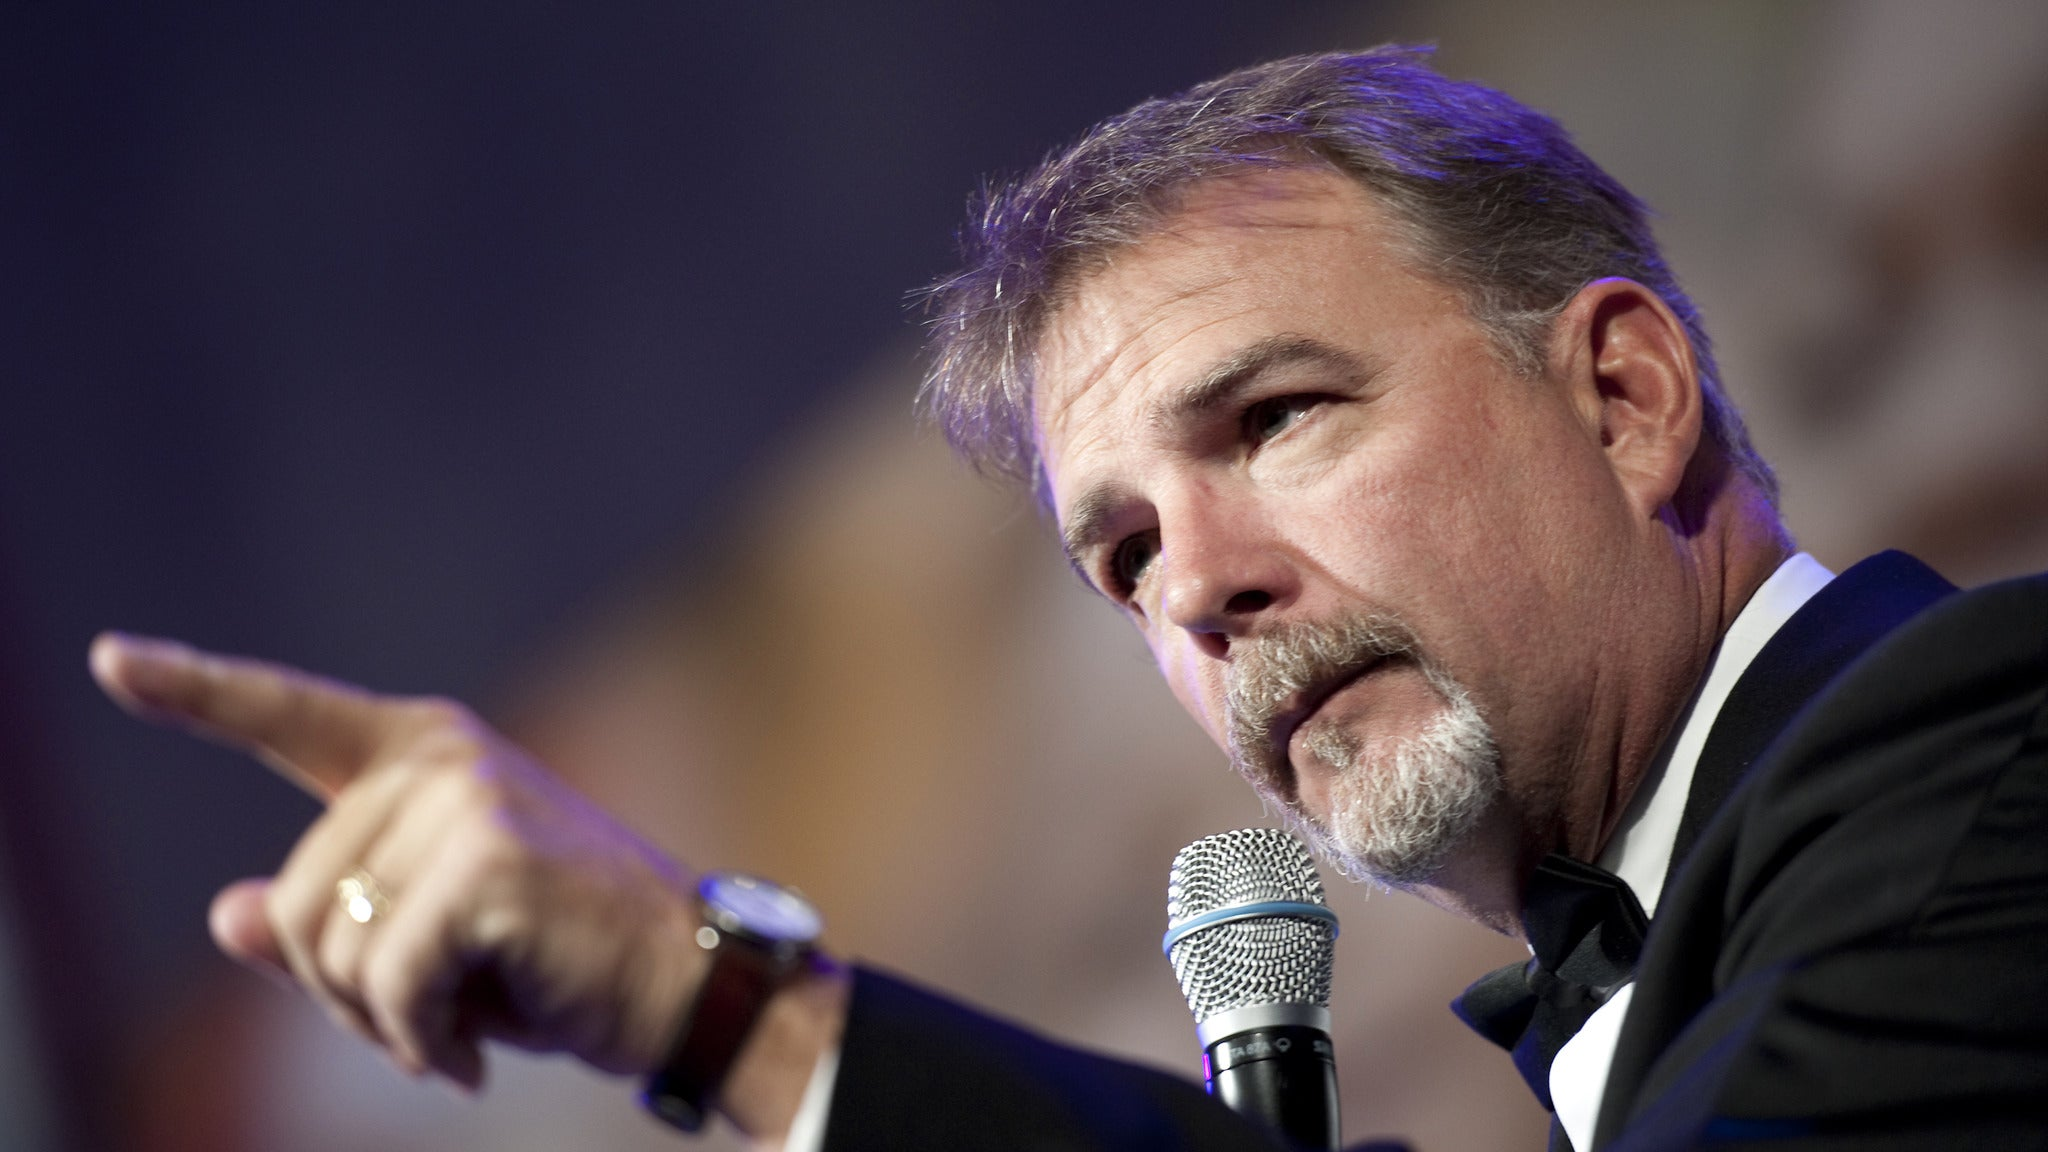 Bill Engvall at Five Flags Center